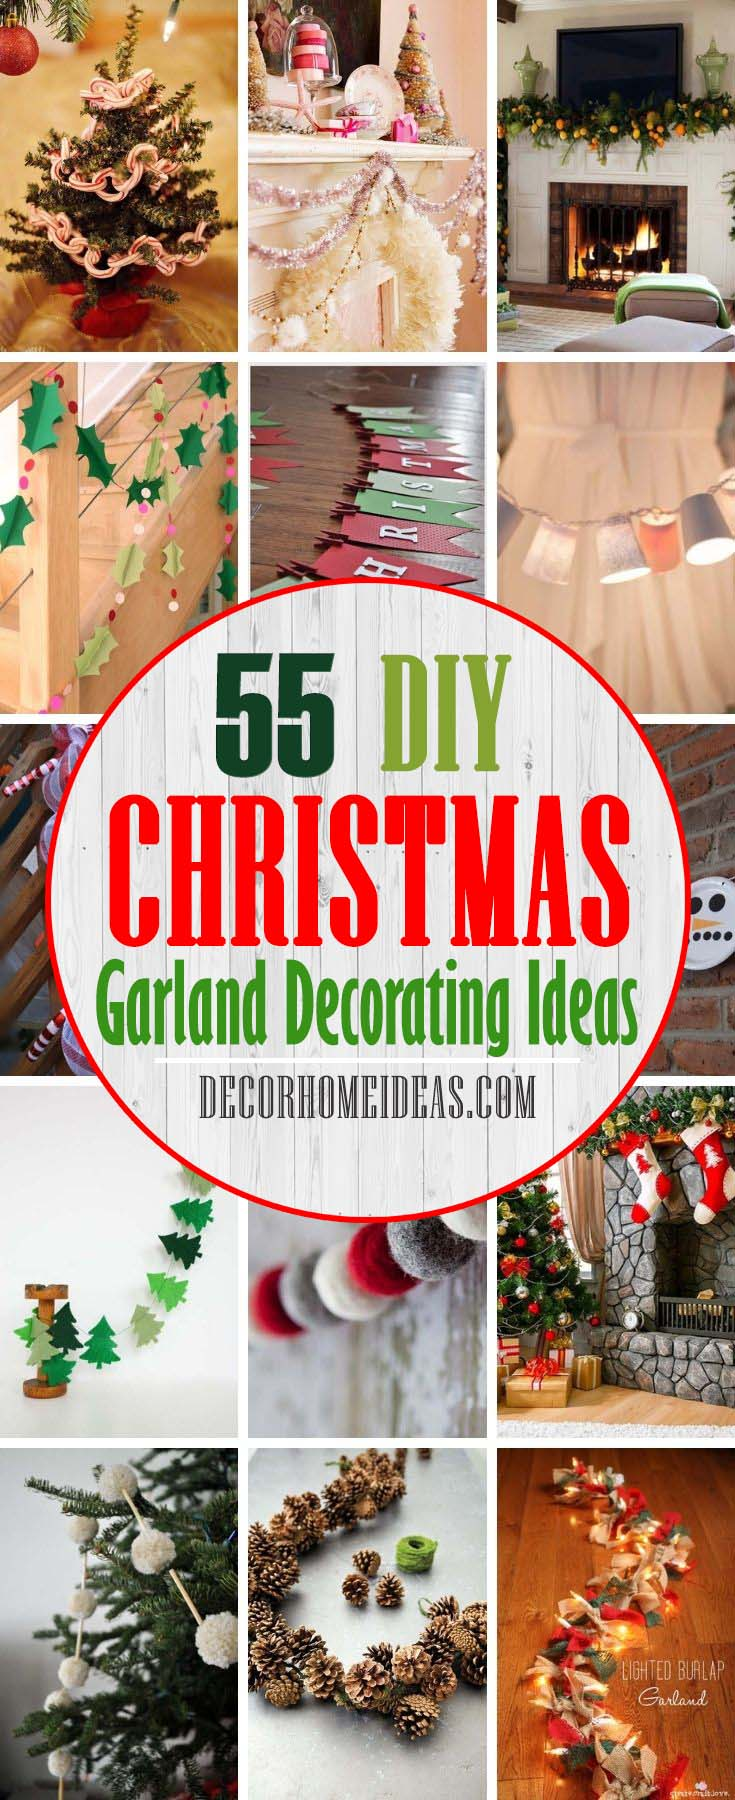 Best DIY Christmas Garland Decorating Ideas. Garland may be one of the most quintessential Christmas decorations you can have in your home during the holiday season, not counting your tree, of course. You may want to DIY your own to match your other decor, or opt for a more classic store-bought look. #decorhomeideas